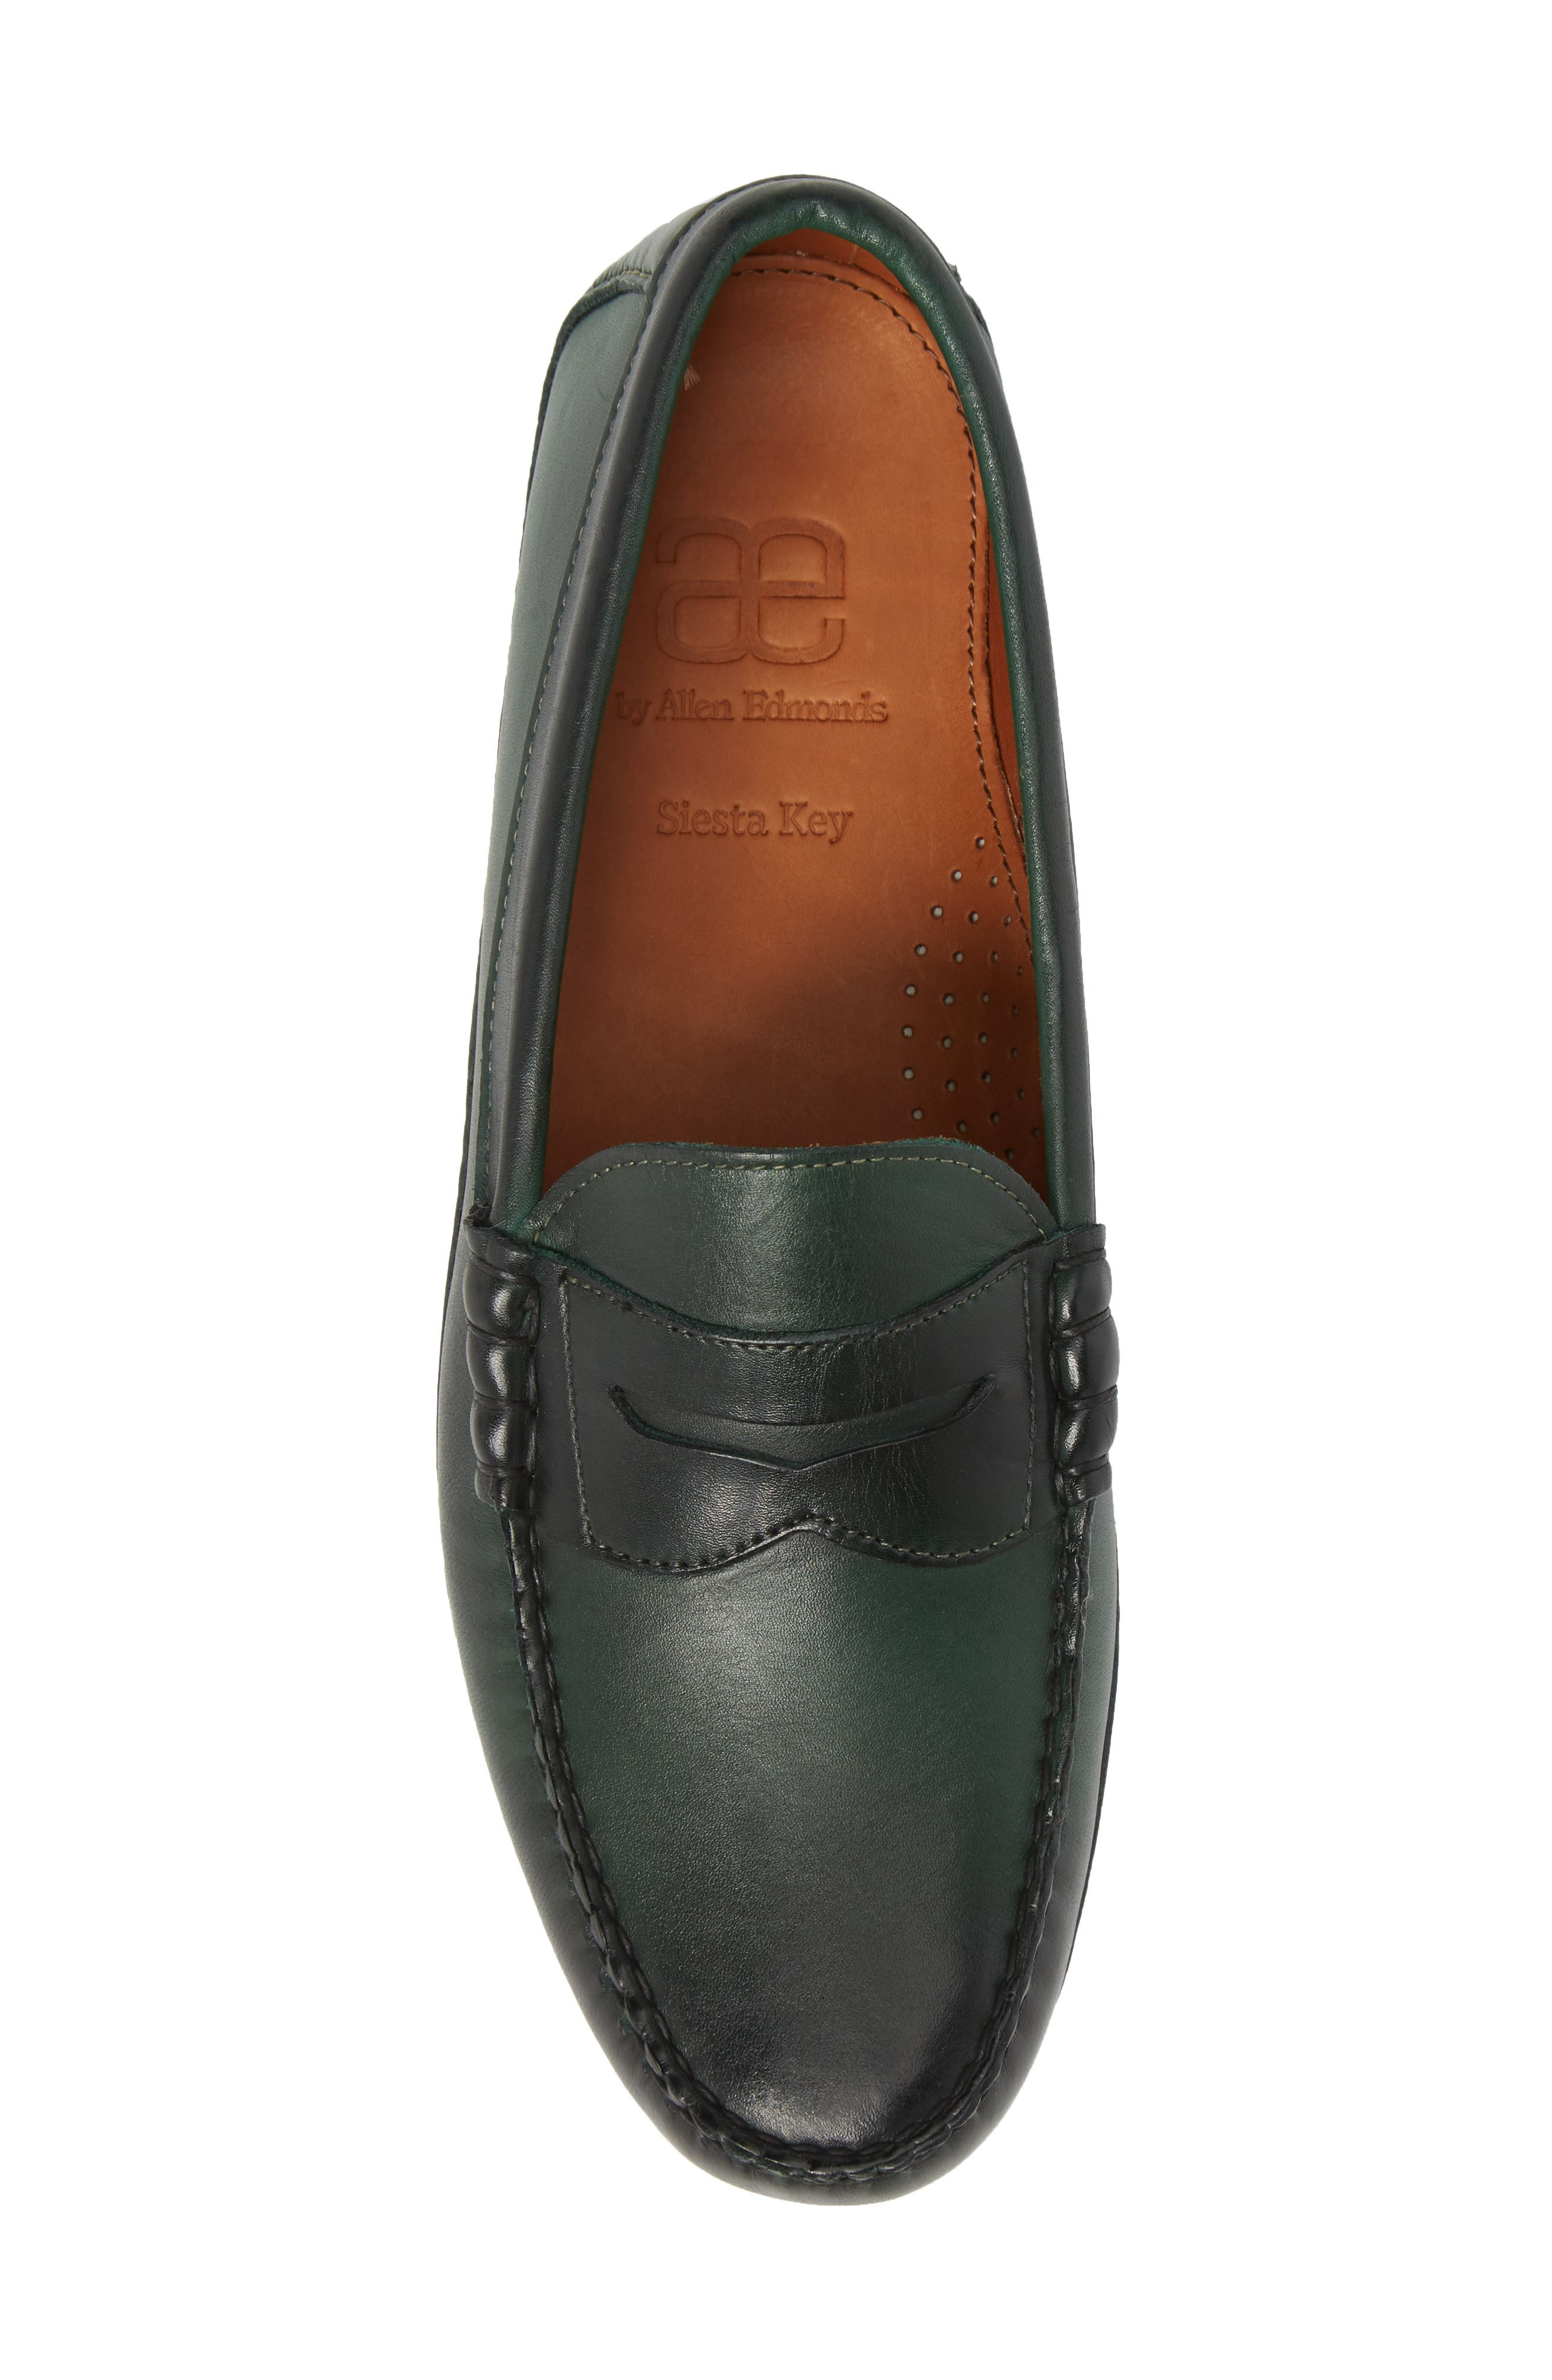 Siesta Key Penny Loafer,                             Alternate thumbnail 5, color,                             GREEN LEATHER